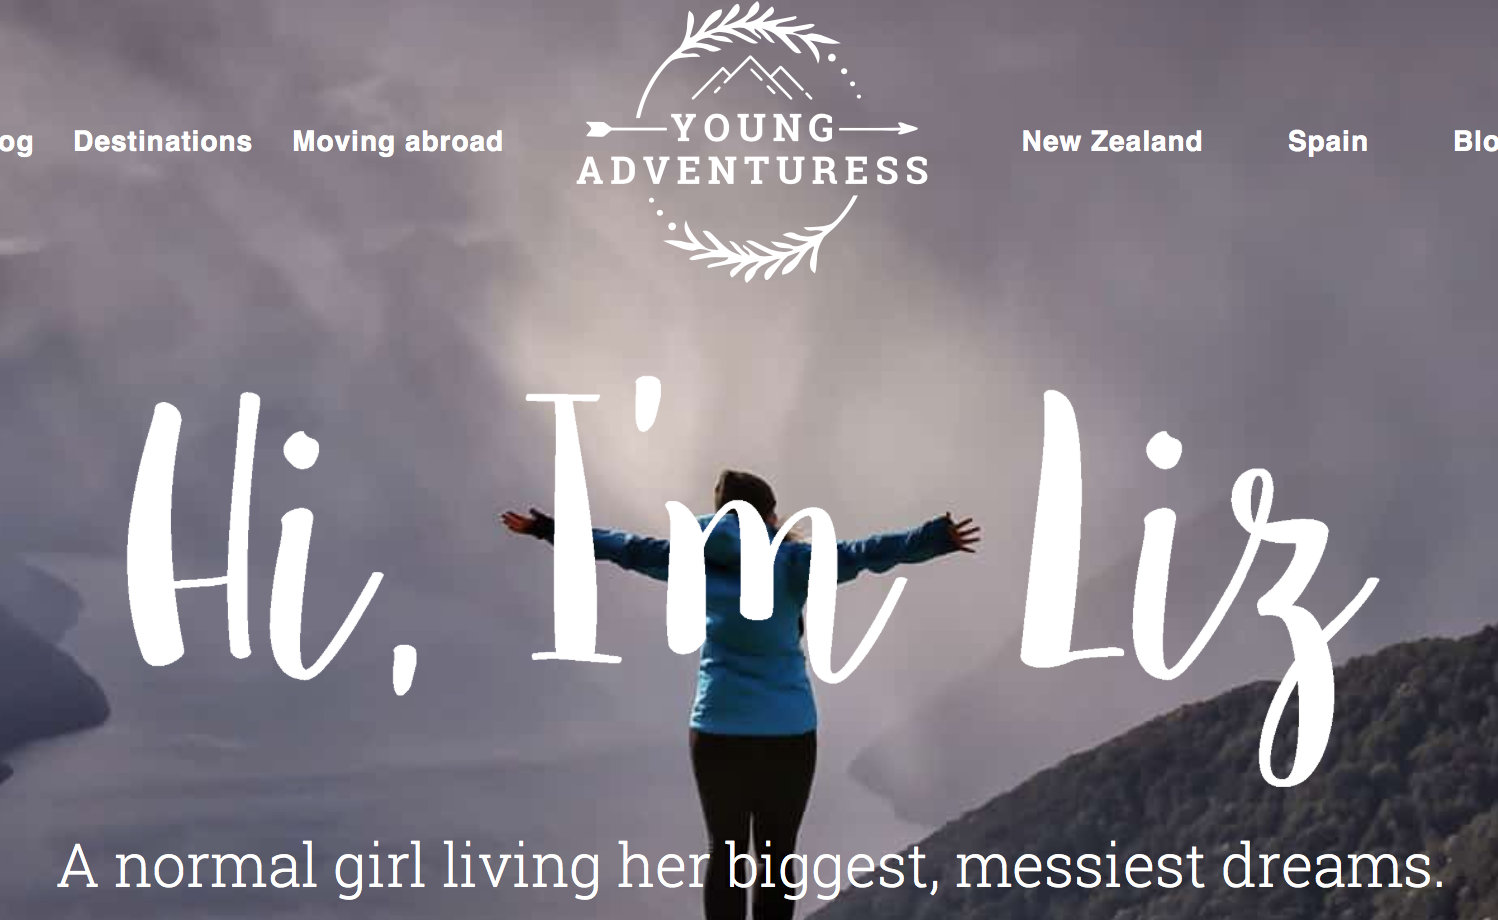 5. Young Adventuress - Liz is an American, living in New Zealand, travelling the world and blogging to tell about it. Her photos are beautiful, her stories are hilarious, and she has some serious opinions about social media and tips about building an online presence. She comes with a warning - be prepared to sit on her social media pages and be distracted for hours. Have fun!